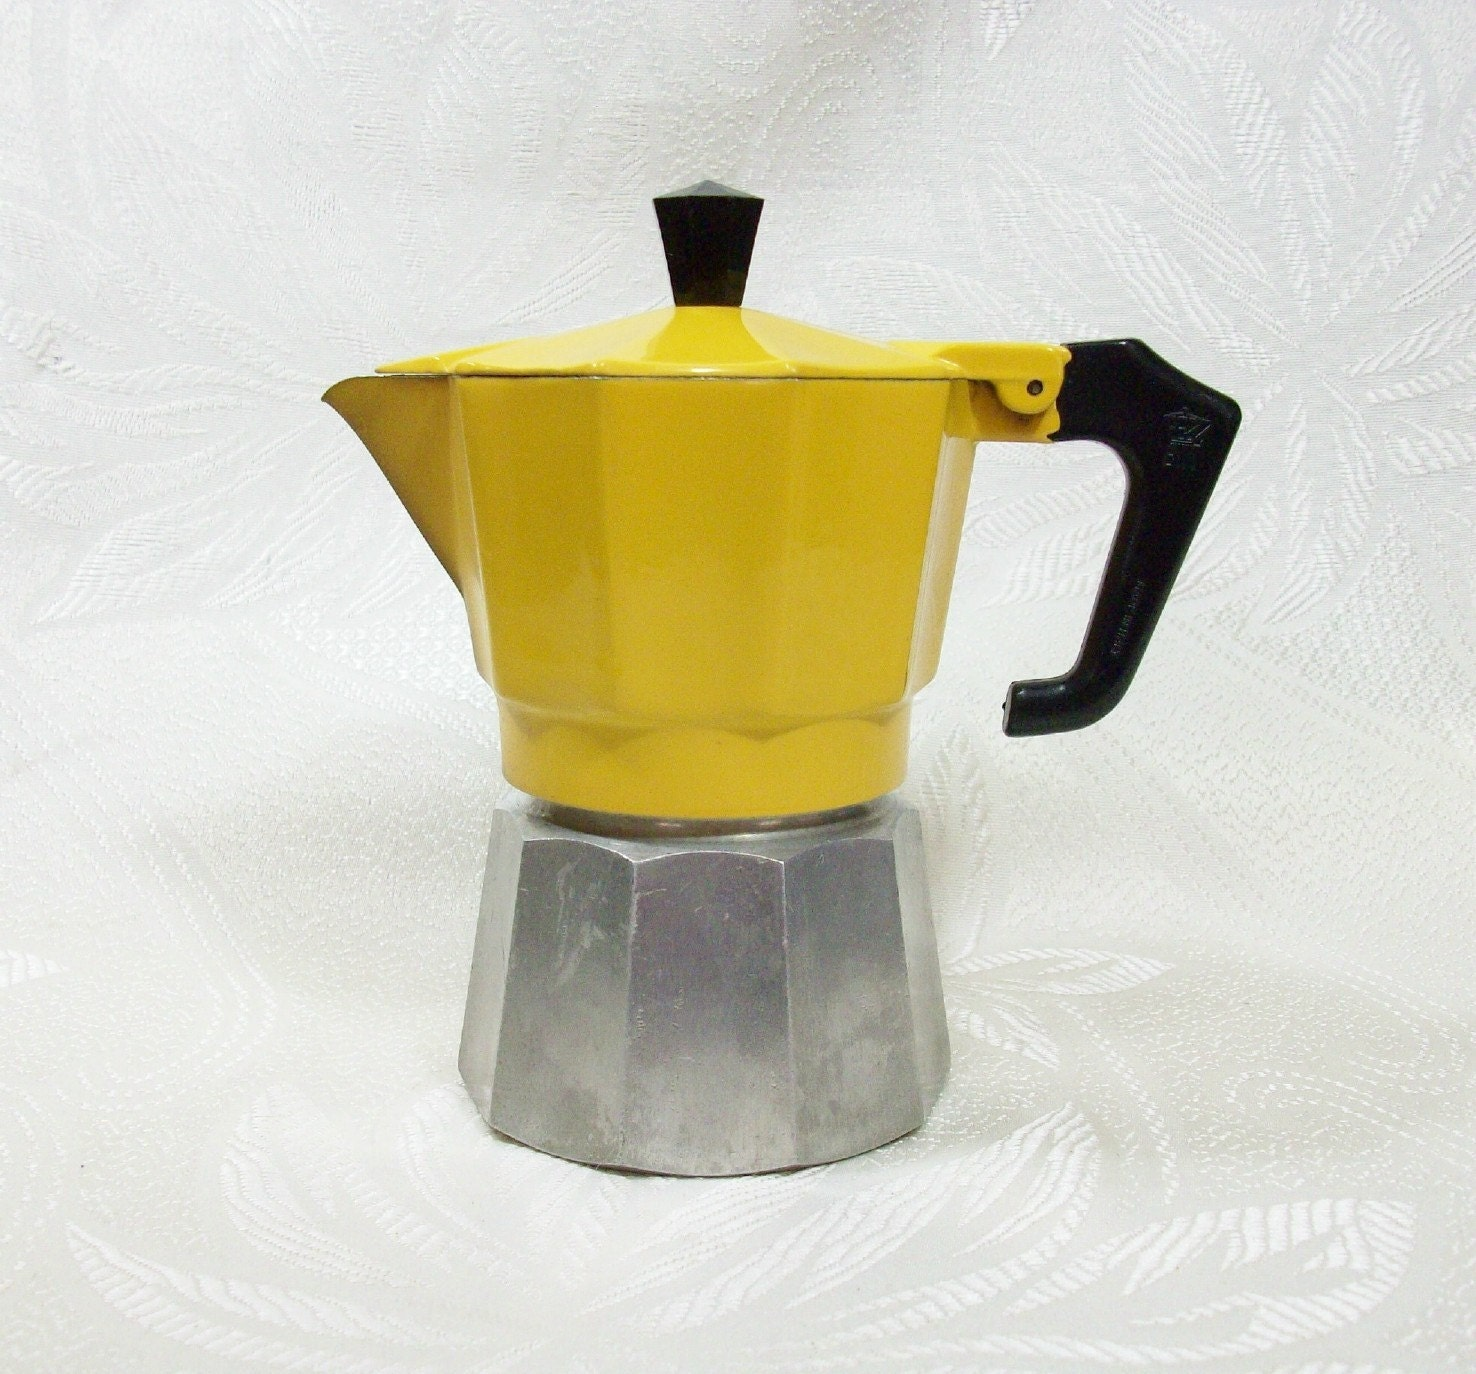 RESERVED Espresso Moka Pot Yellow Metal European Italian